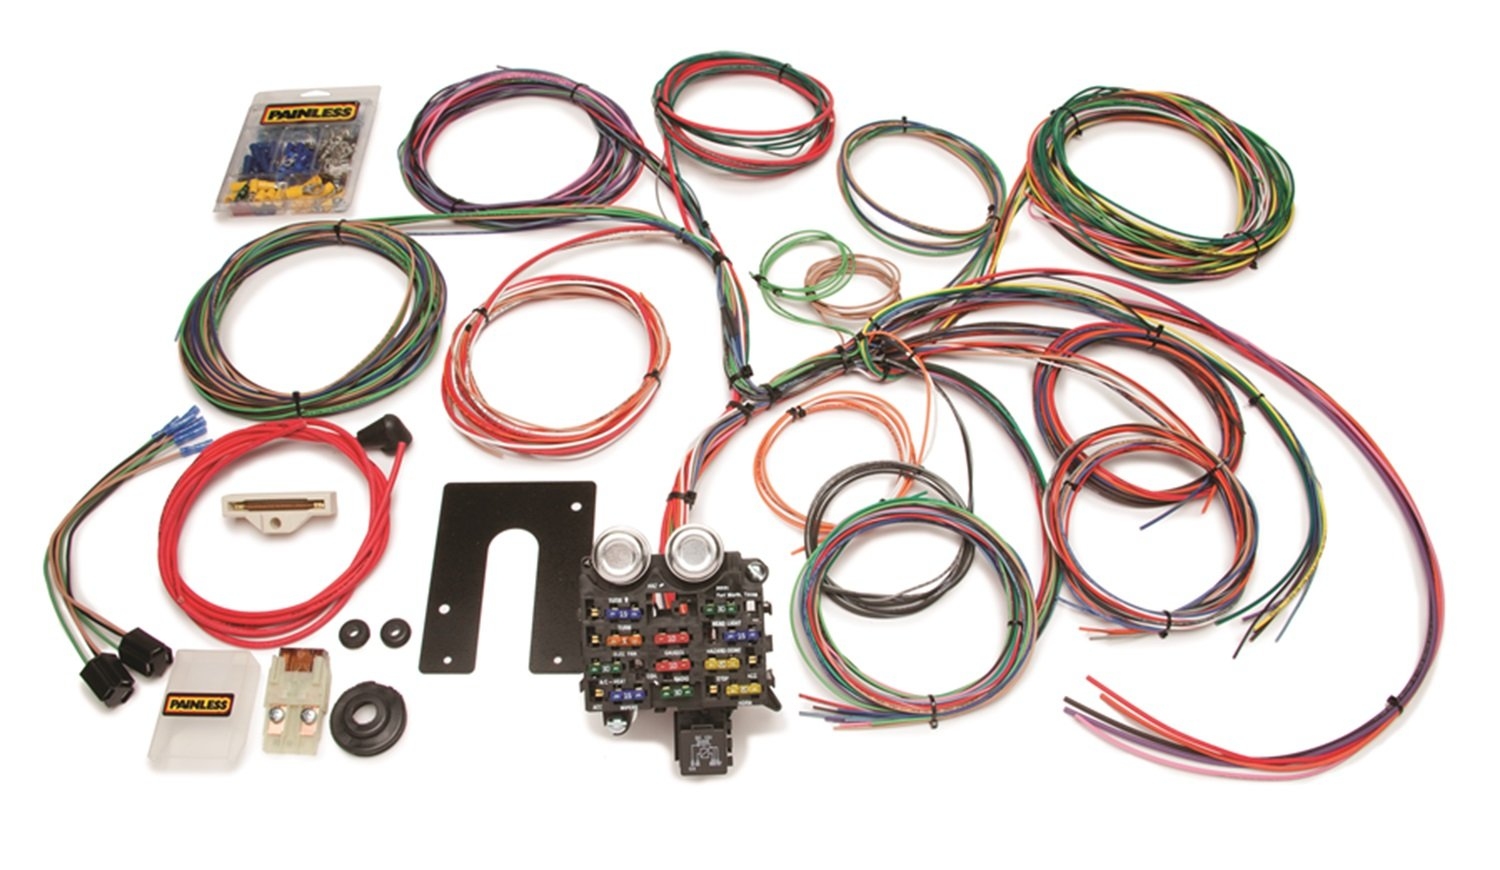 amazon com painless wire 10105 wiring harness with firewall grommet dodge ram wiring harness amazon com painless wire 10105 wiring harness with firewall grommet for jeep cj automotive